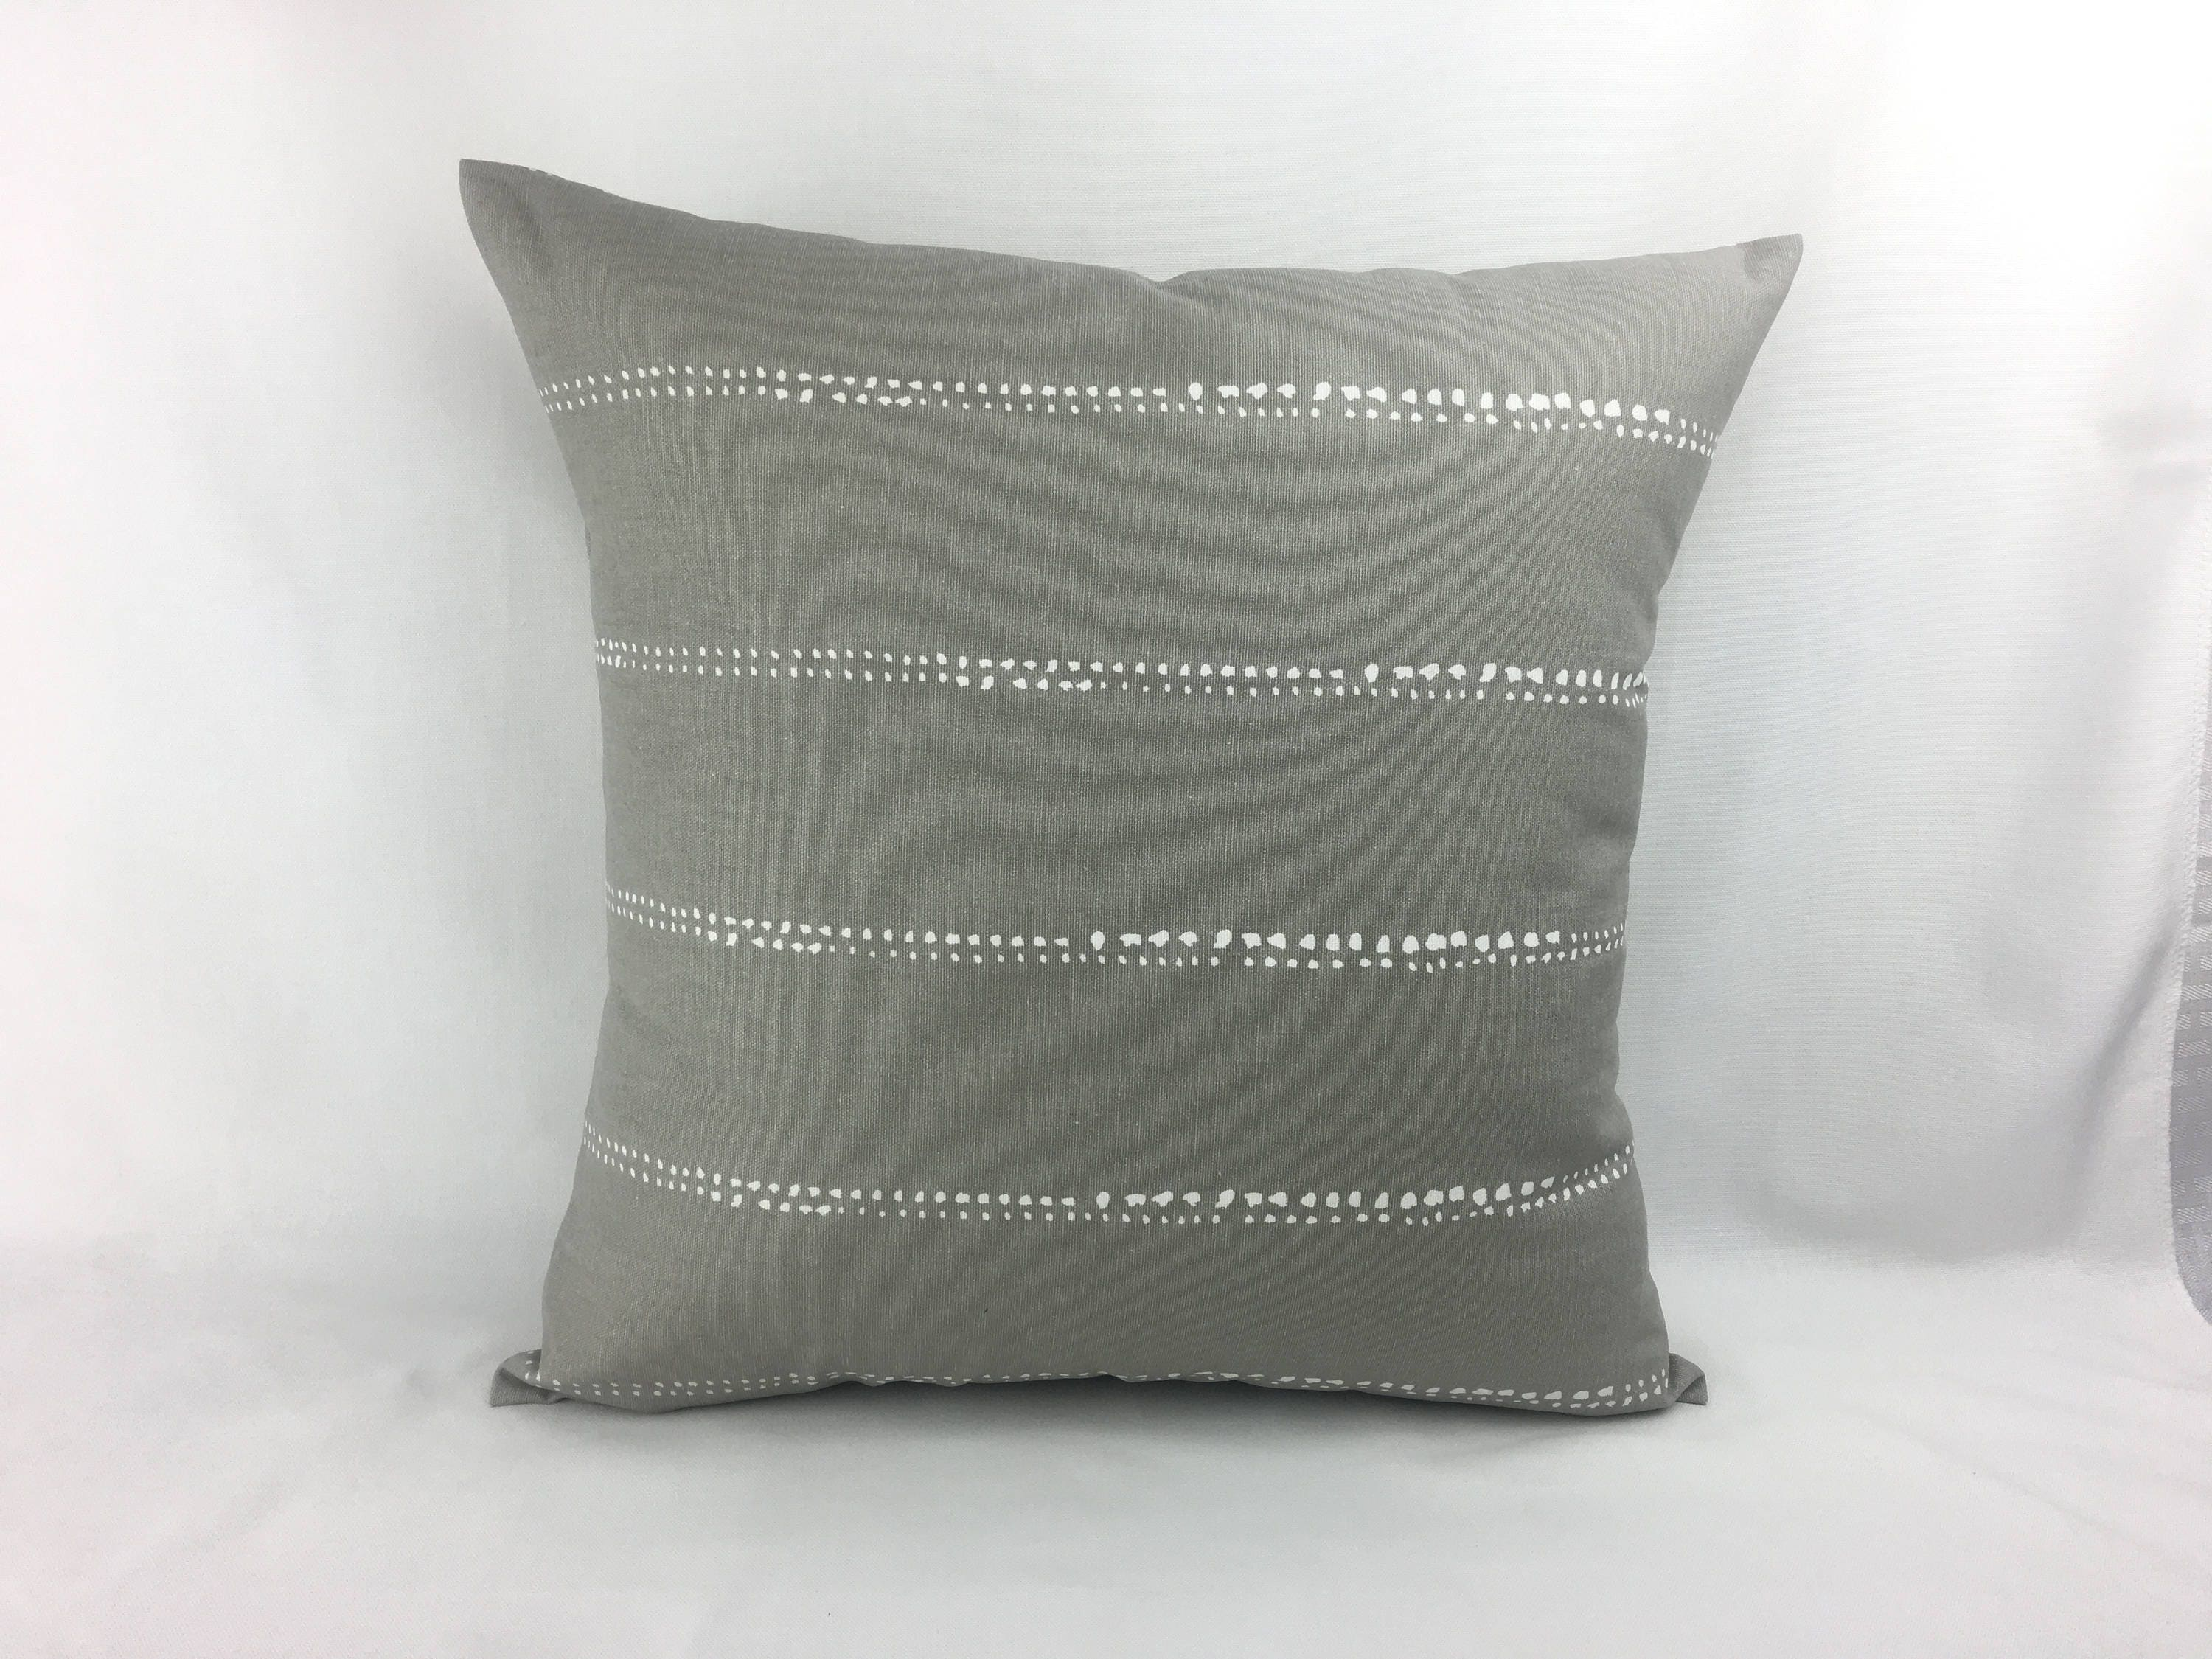 grey pillow covers grey and white throw pillows decorative. Black Bedroom Furniture Sets. Home Design Ideas